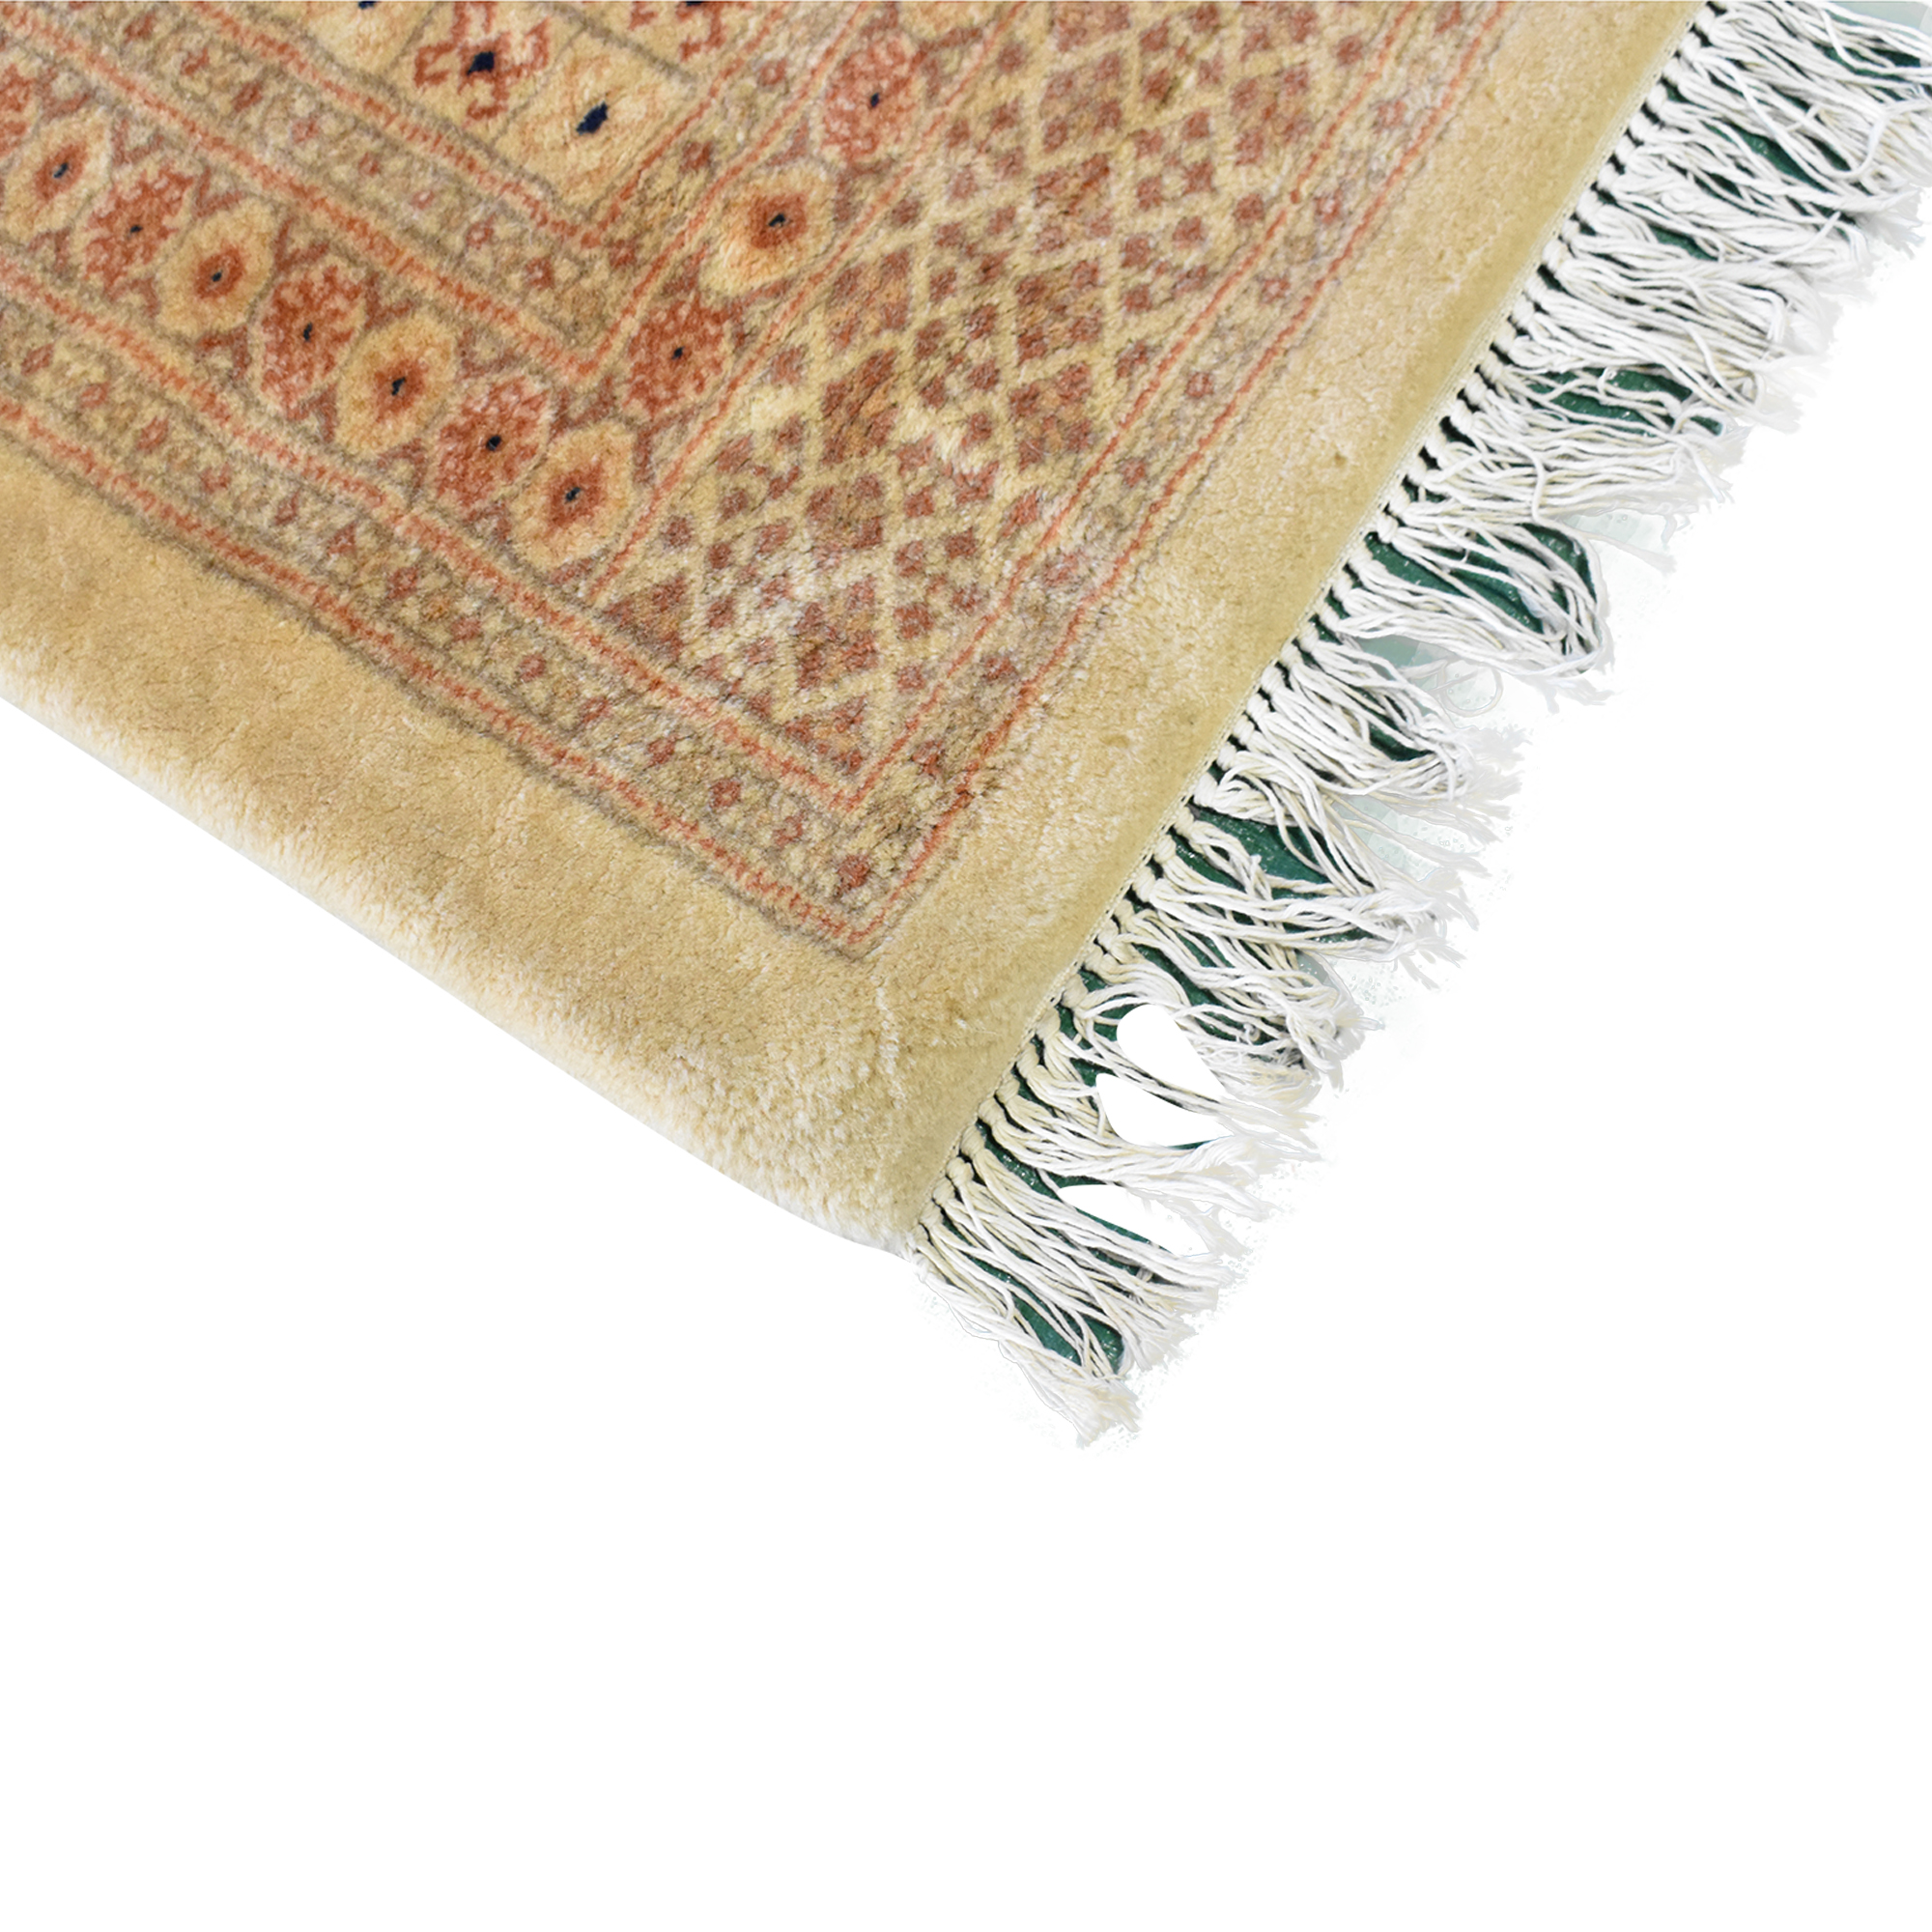 Woven Concepts Woven Concepts Patterned Area Rug for sale